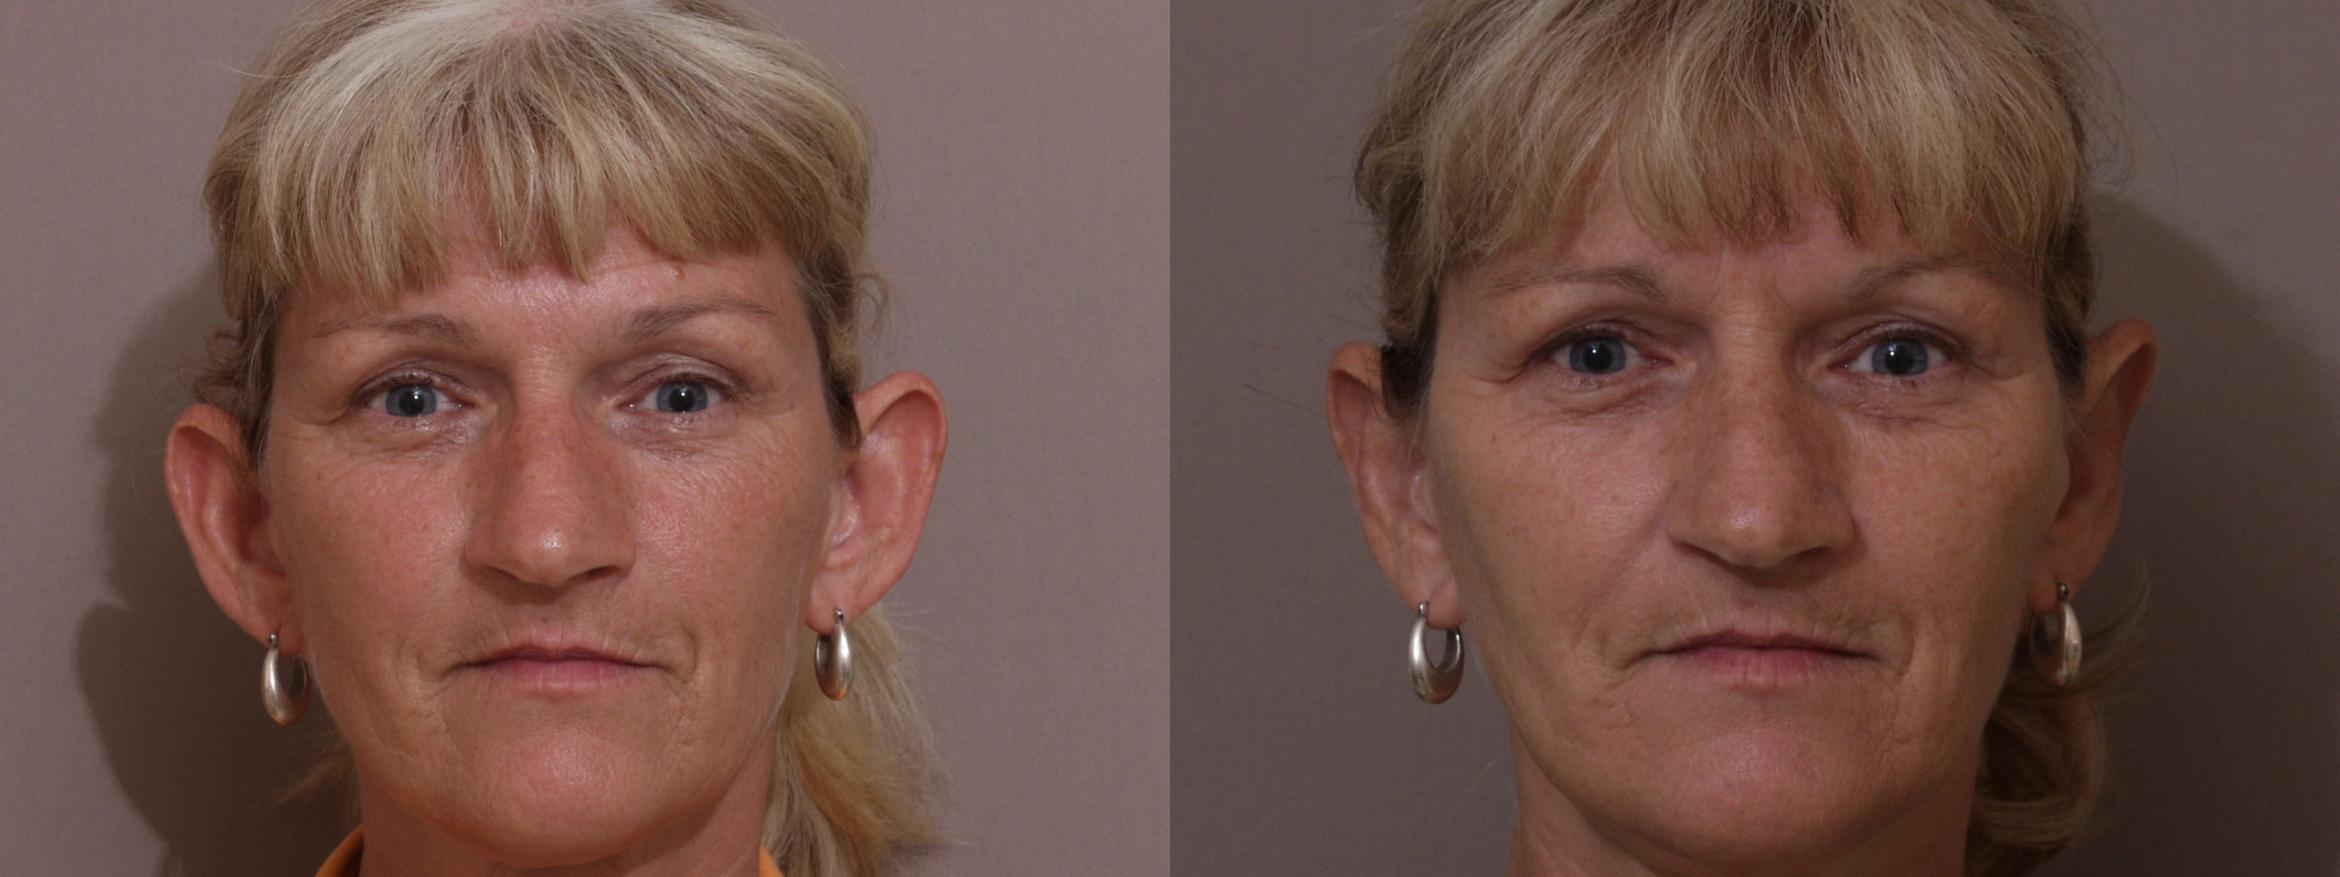 Otoplasty Case 68 Before & After View #1 | Webster, TX | Houston Plastic and Reconstructive Surgery